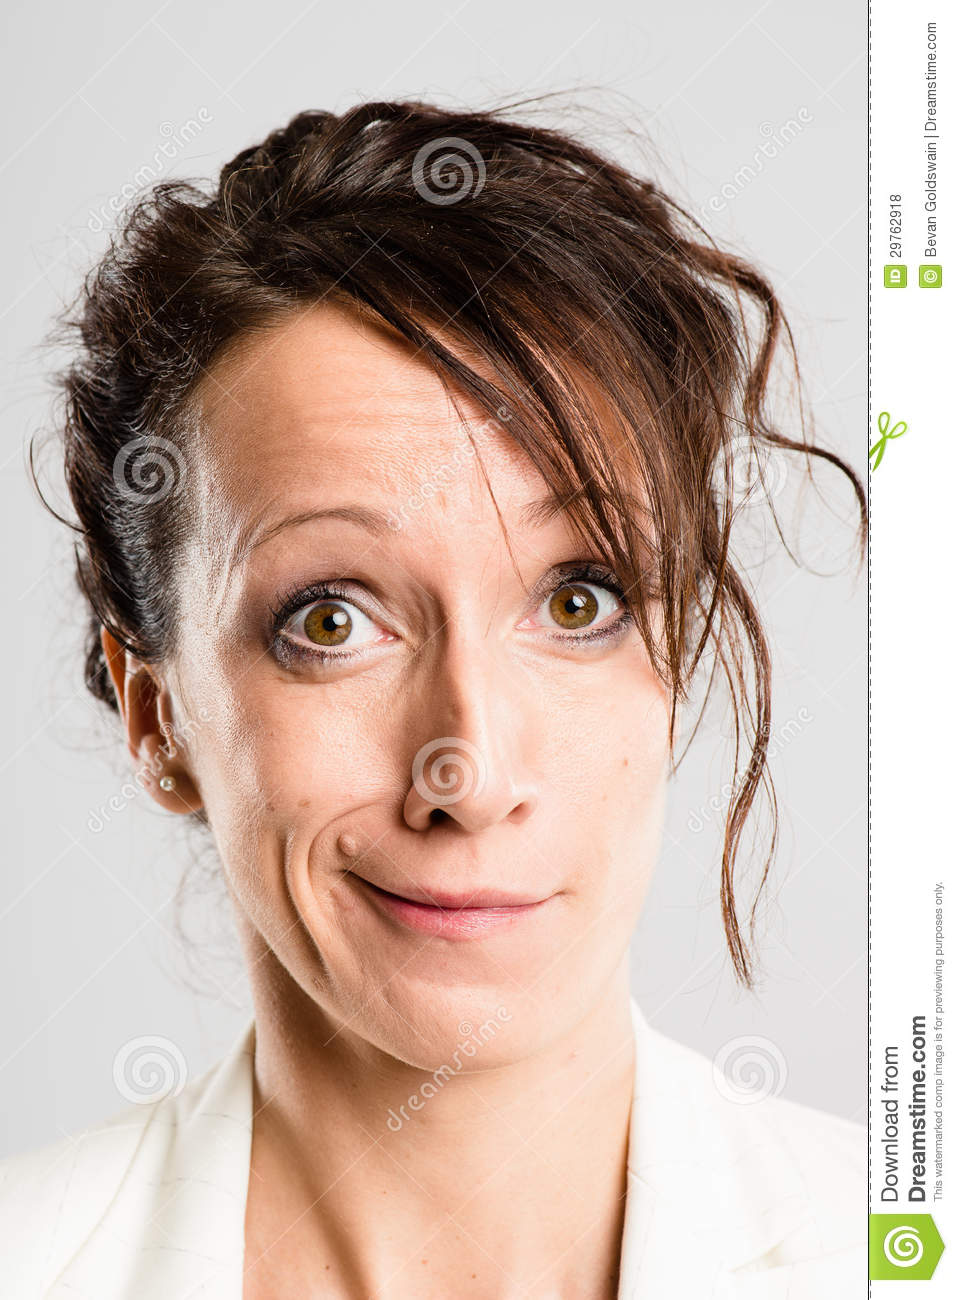 happy woman portrait real people high definition yellow